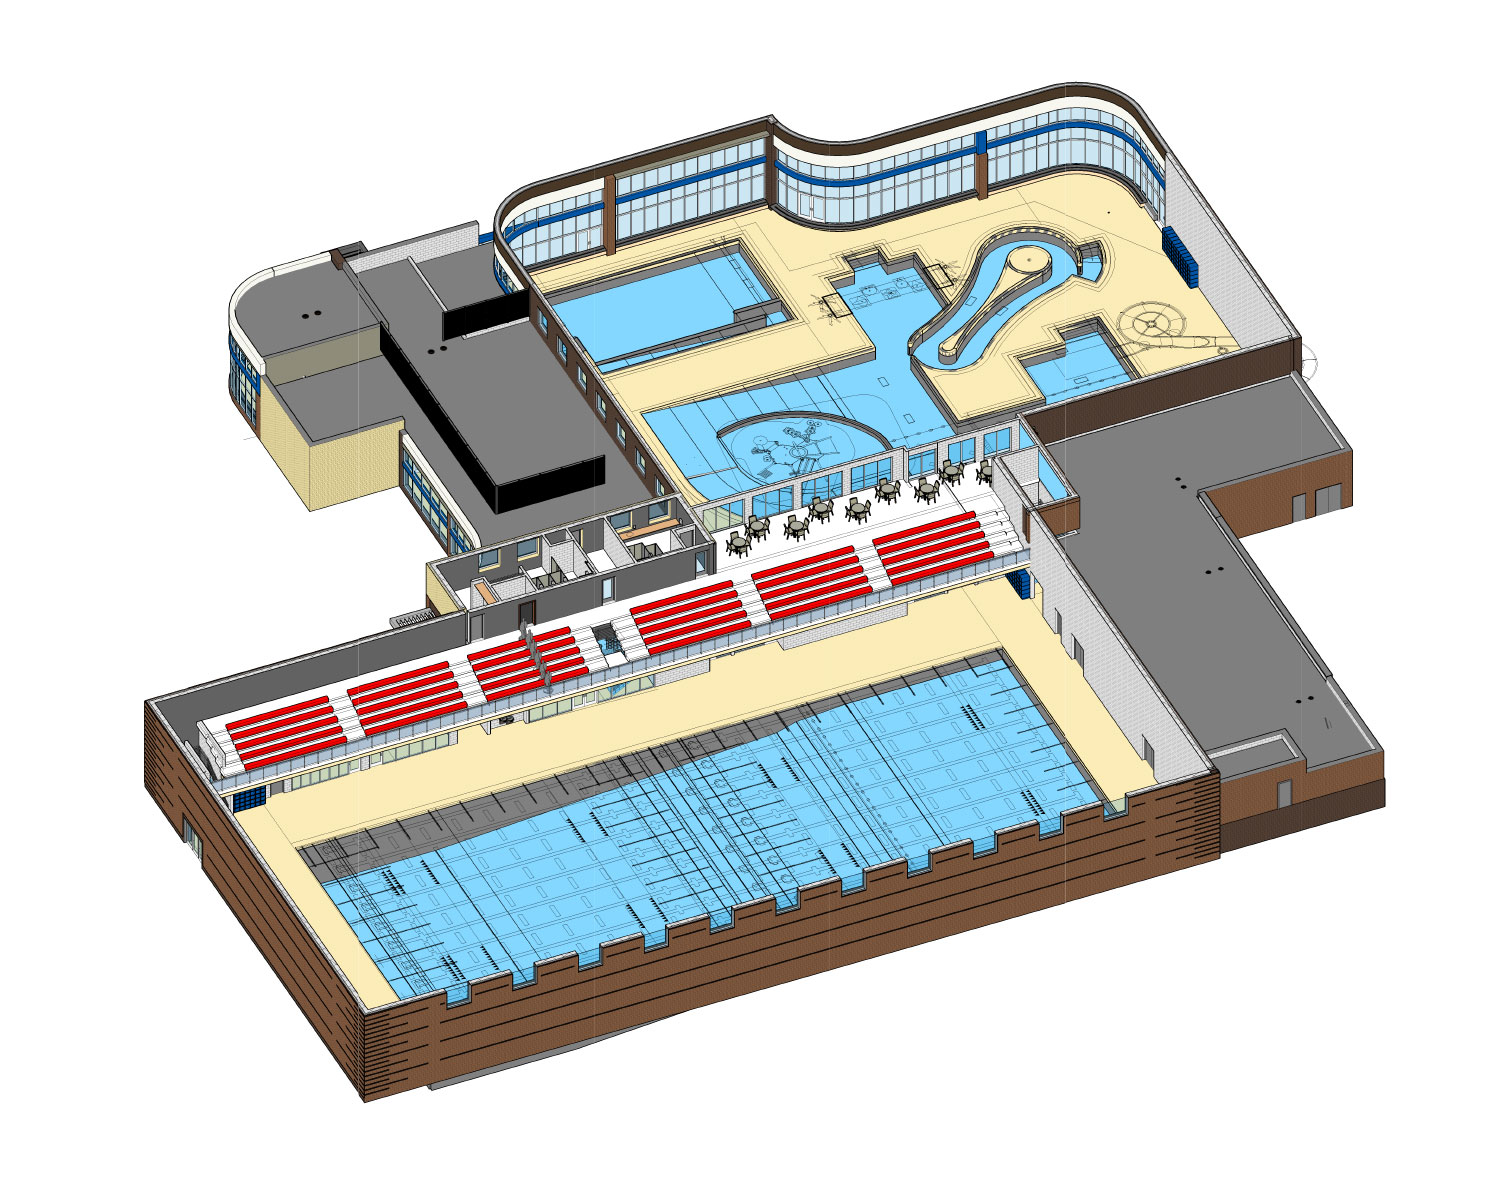 Midco aquatic center city of sioux falls - Citylink head office telephone number ...